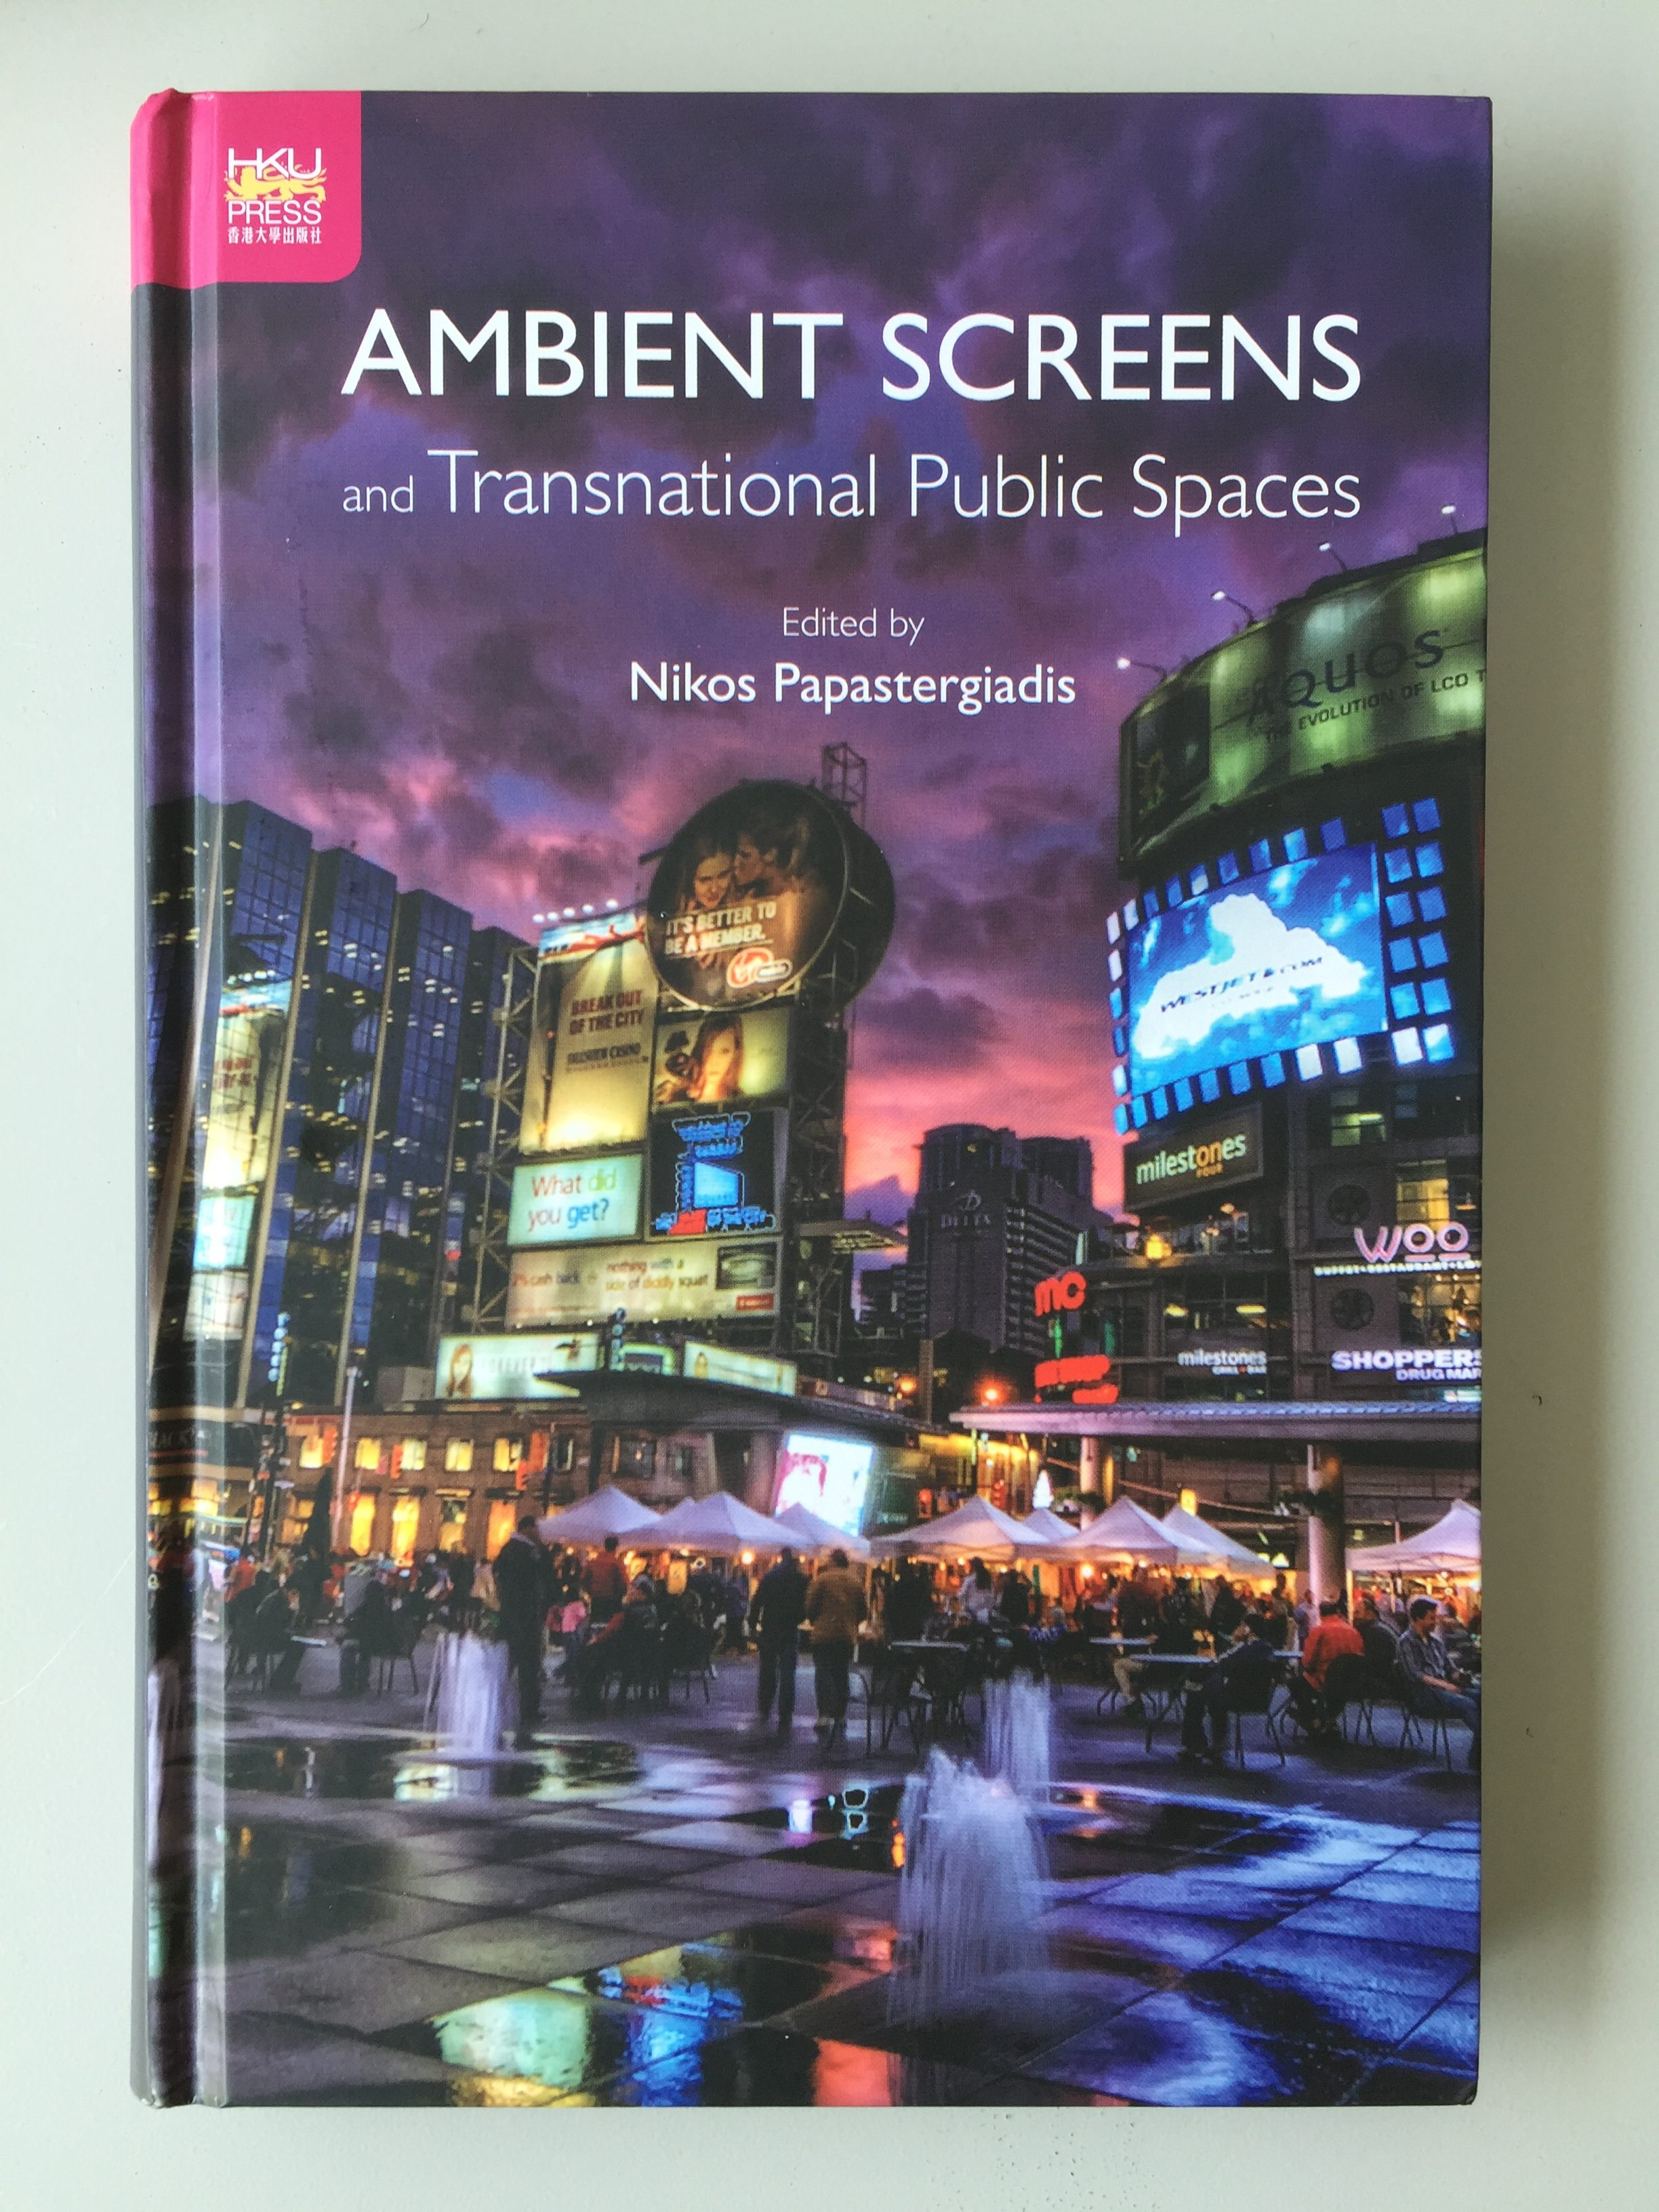 New book chapter in Ambeint Screens and Transnational Public Spaces (2016)